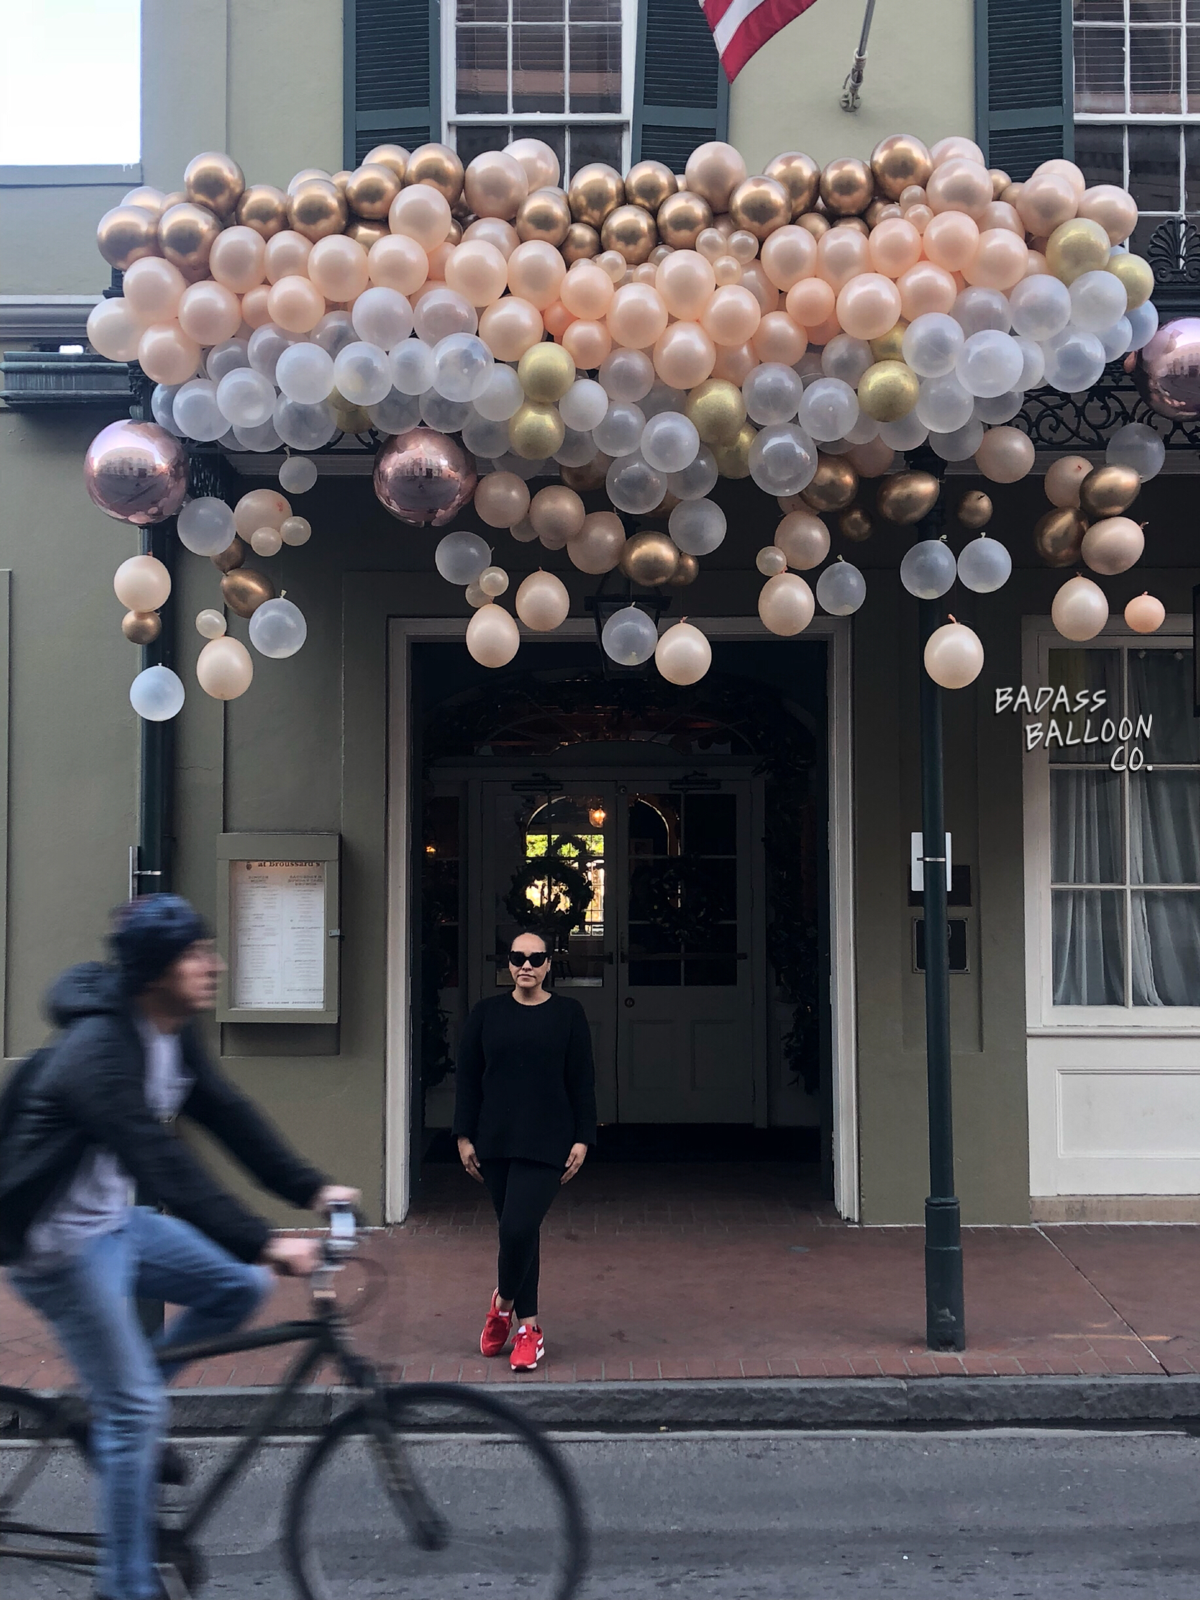 Krewe of Bubbles balloons installation by Badass